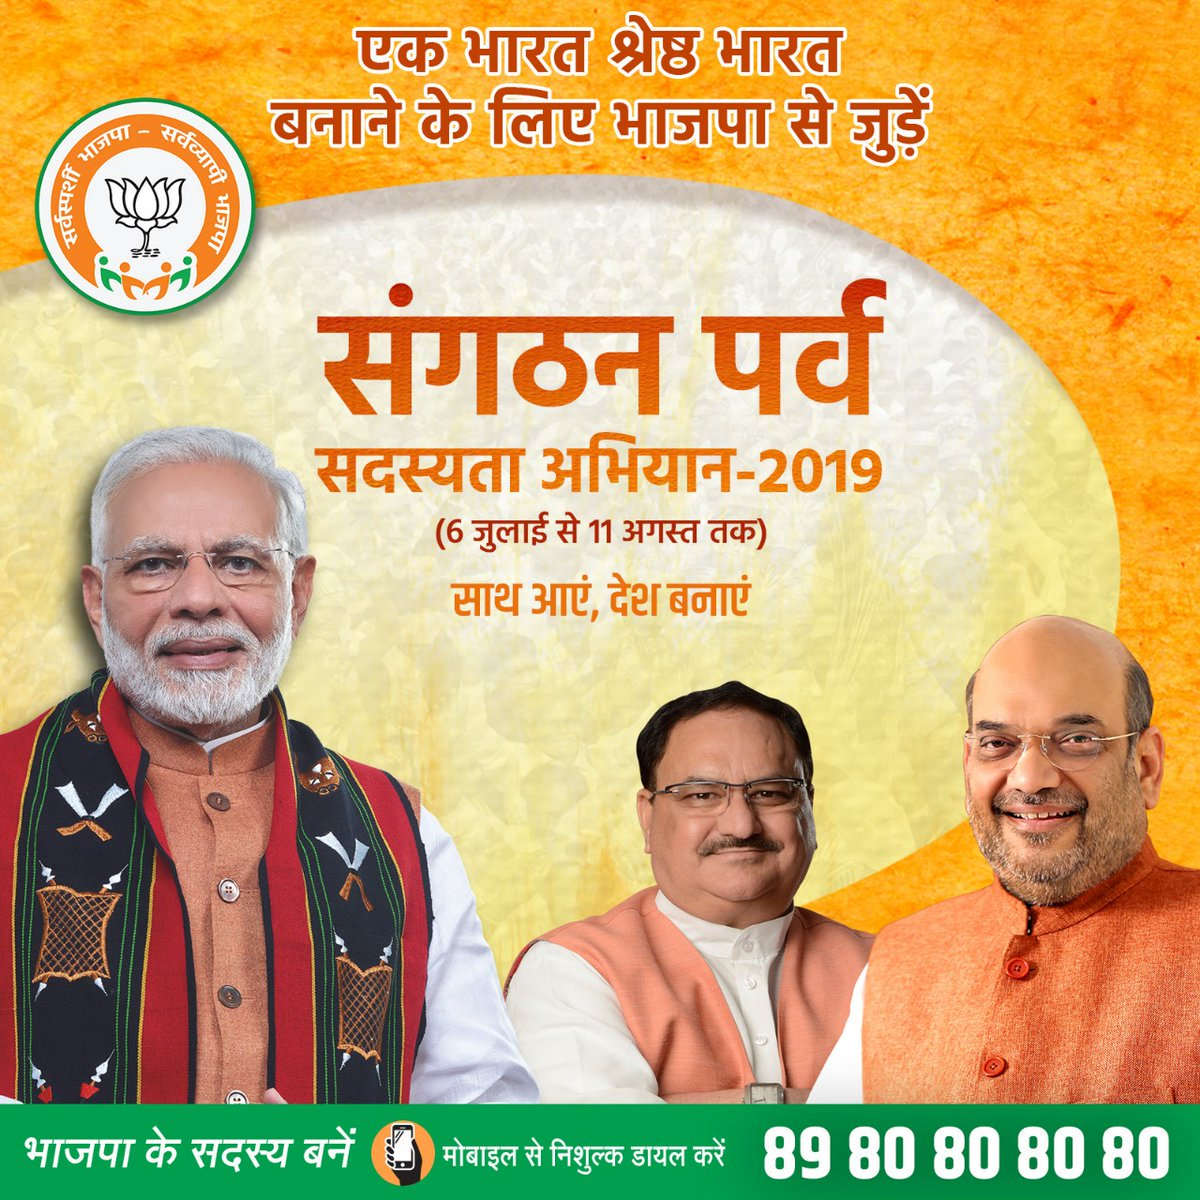 The @BJP4India will be enriched by your active contribution to the Party! Come, be a part of the BJP and contribute to a strong as well as developed India.